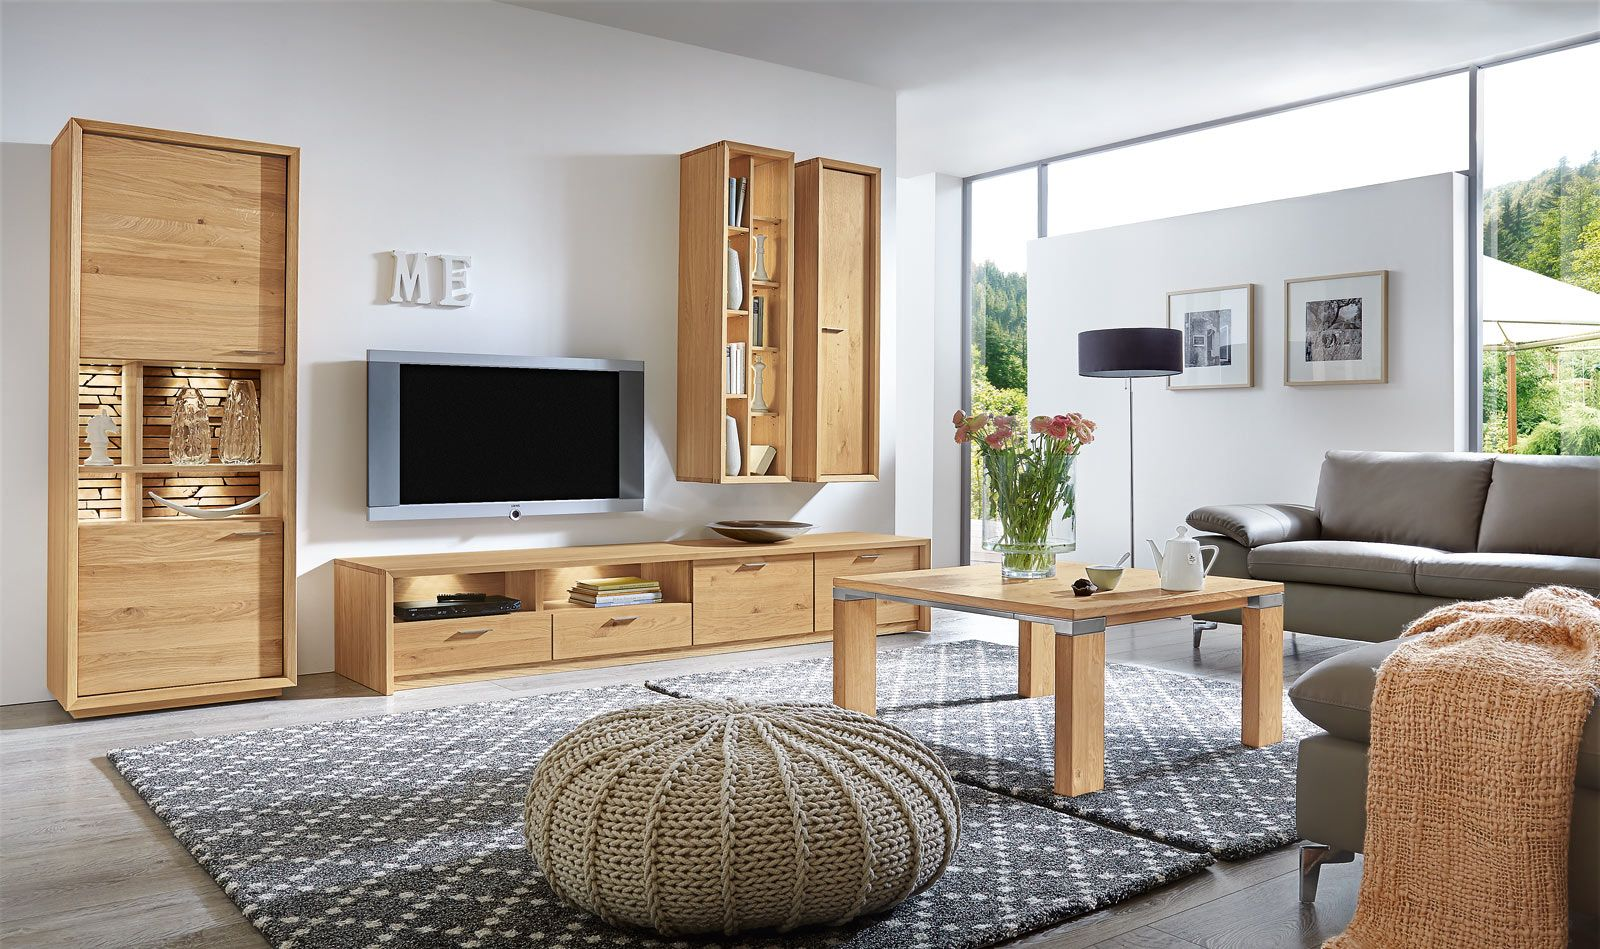 fino programme wohnzimmer venjakob m bel ideen rund ums wohnen pinterest venjakob. Black Bedroom Furniture Sets. Home Design Ideas